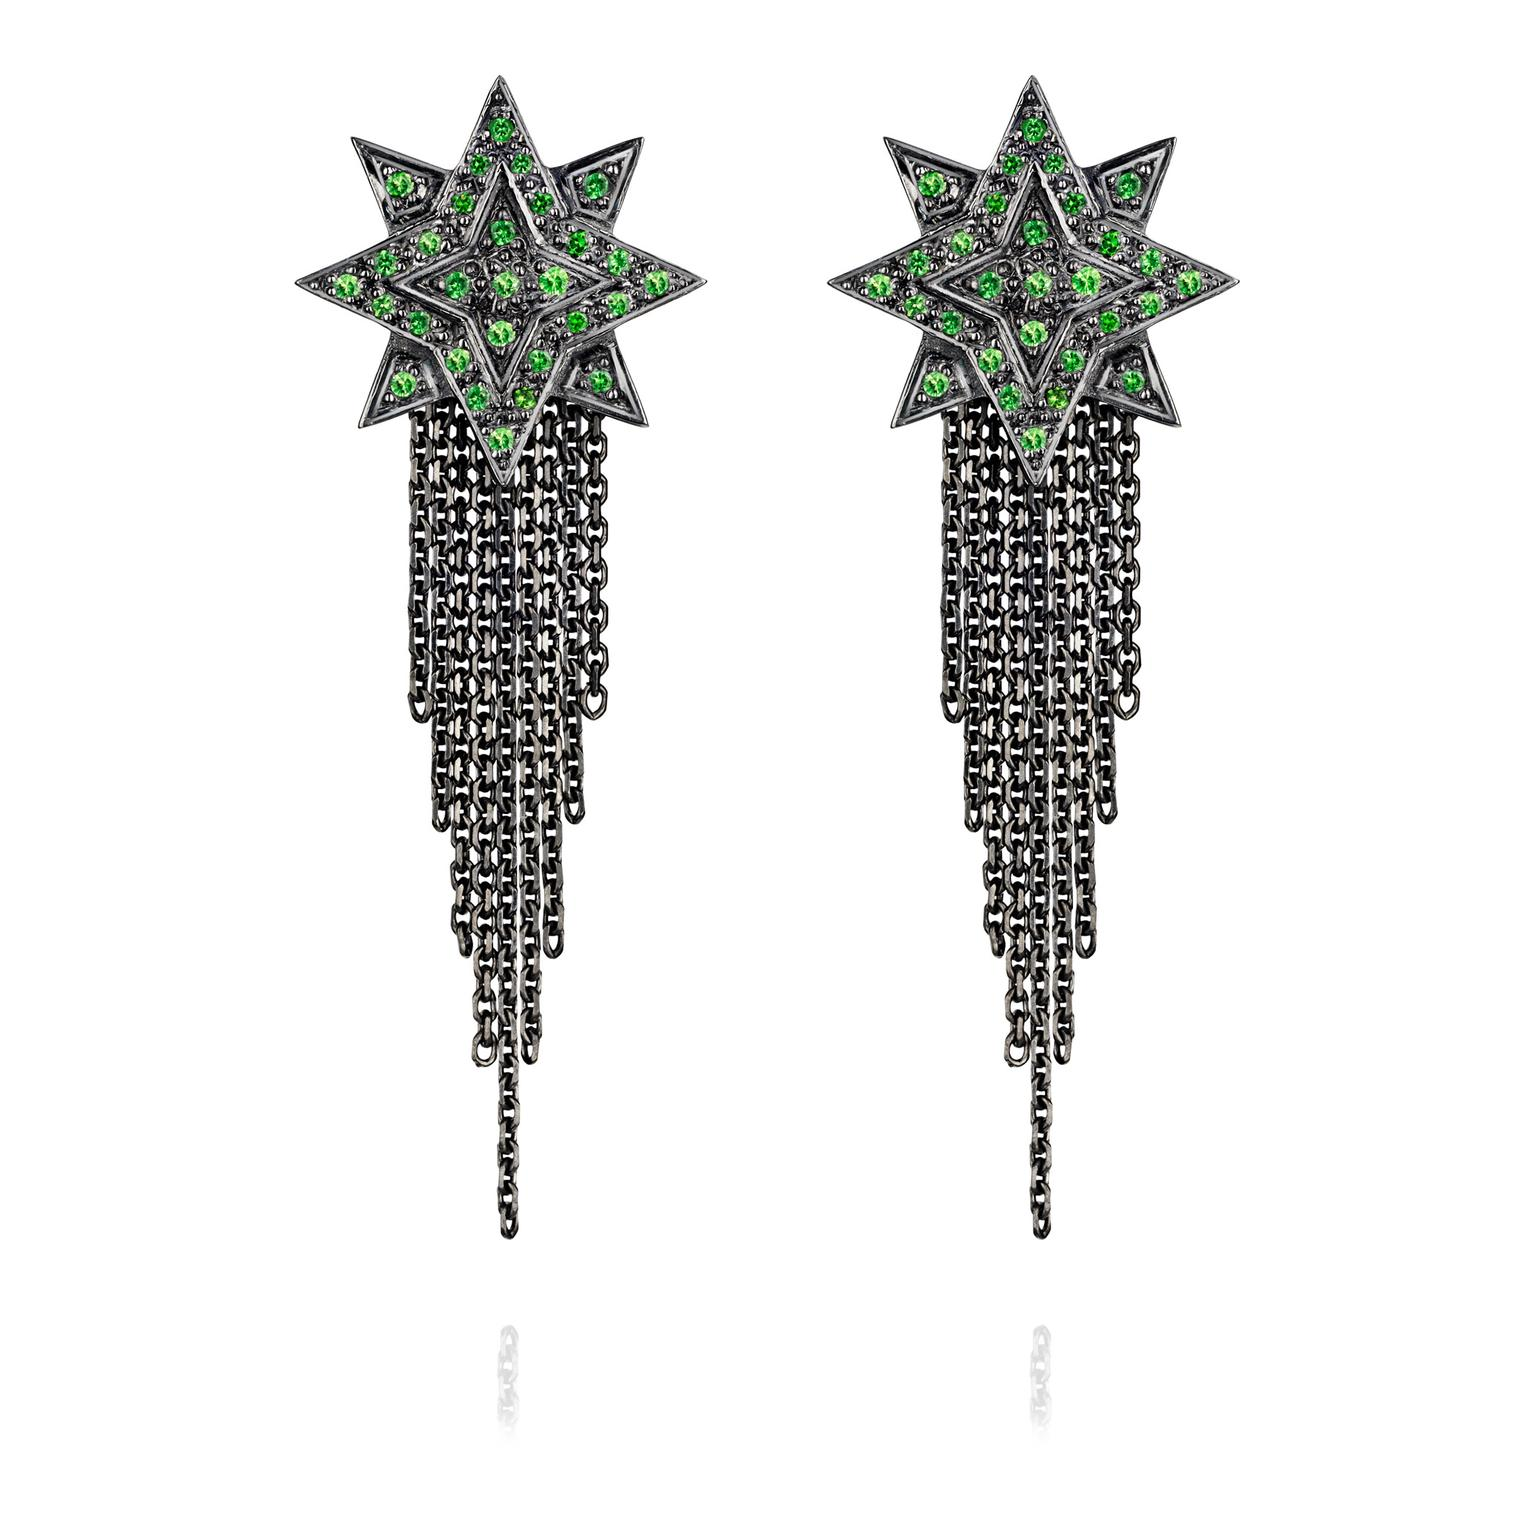 Ana-de-Costa-Star-Earrings-Zoom